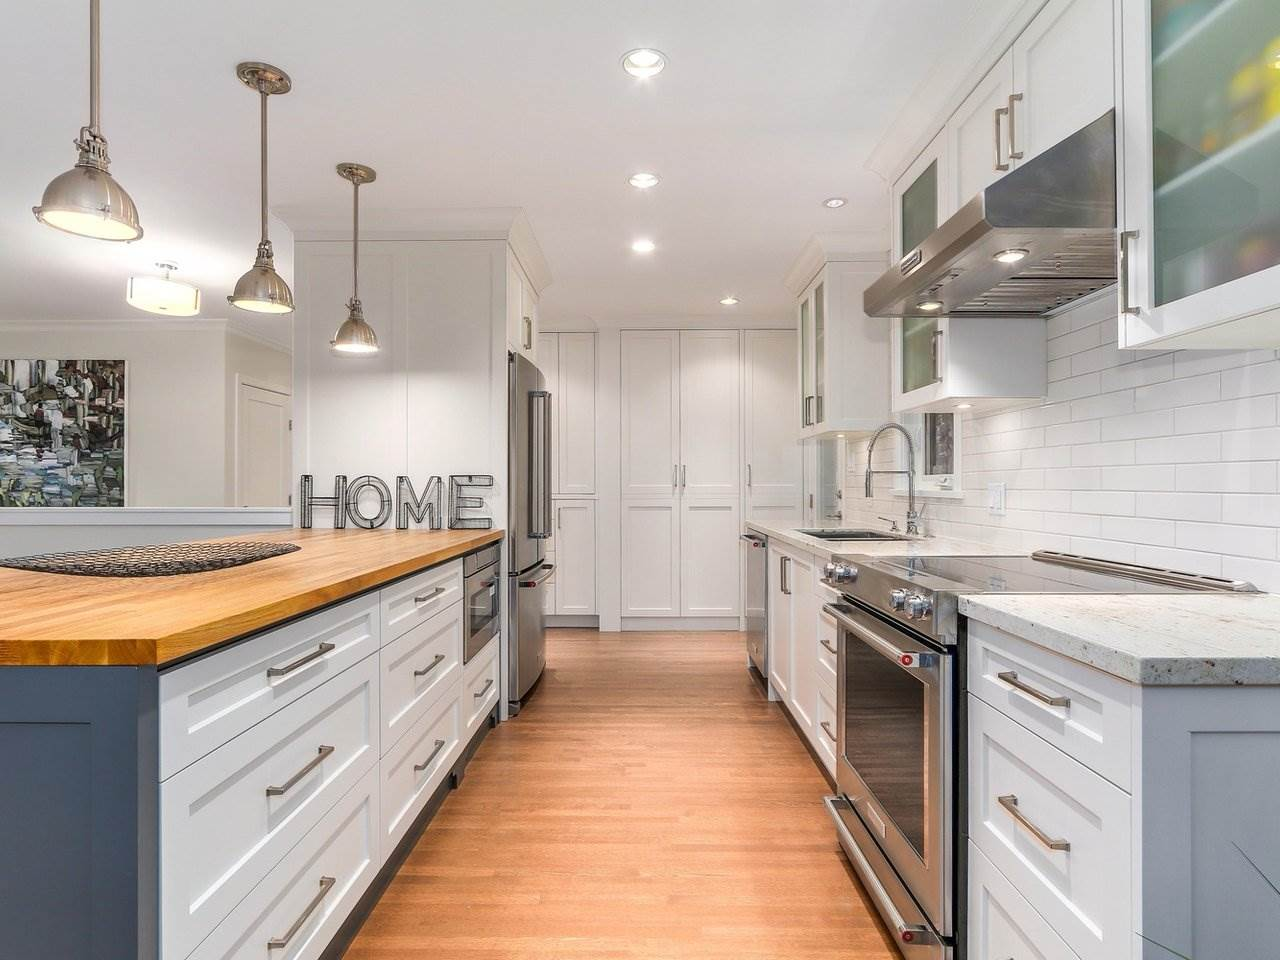 Amazing renovations in the kitchen includes: Marble counters, Kitchen Aid Appliances, ample pantry space. Separate laundry for upstairs built in the kitchen area.